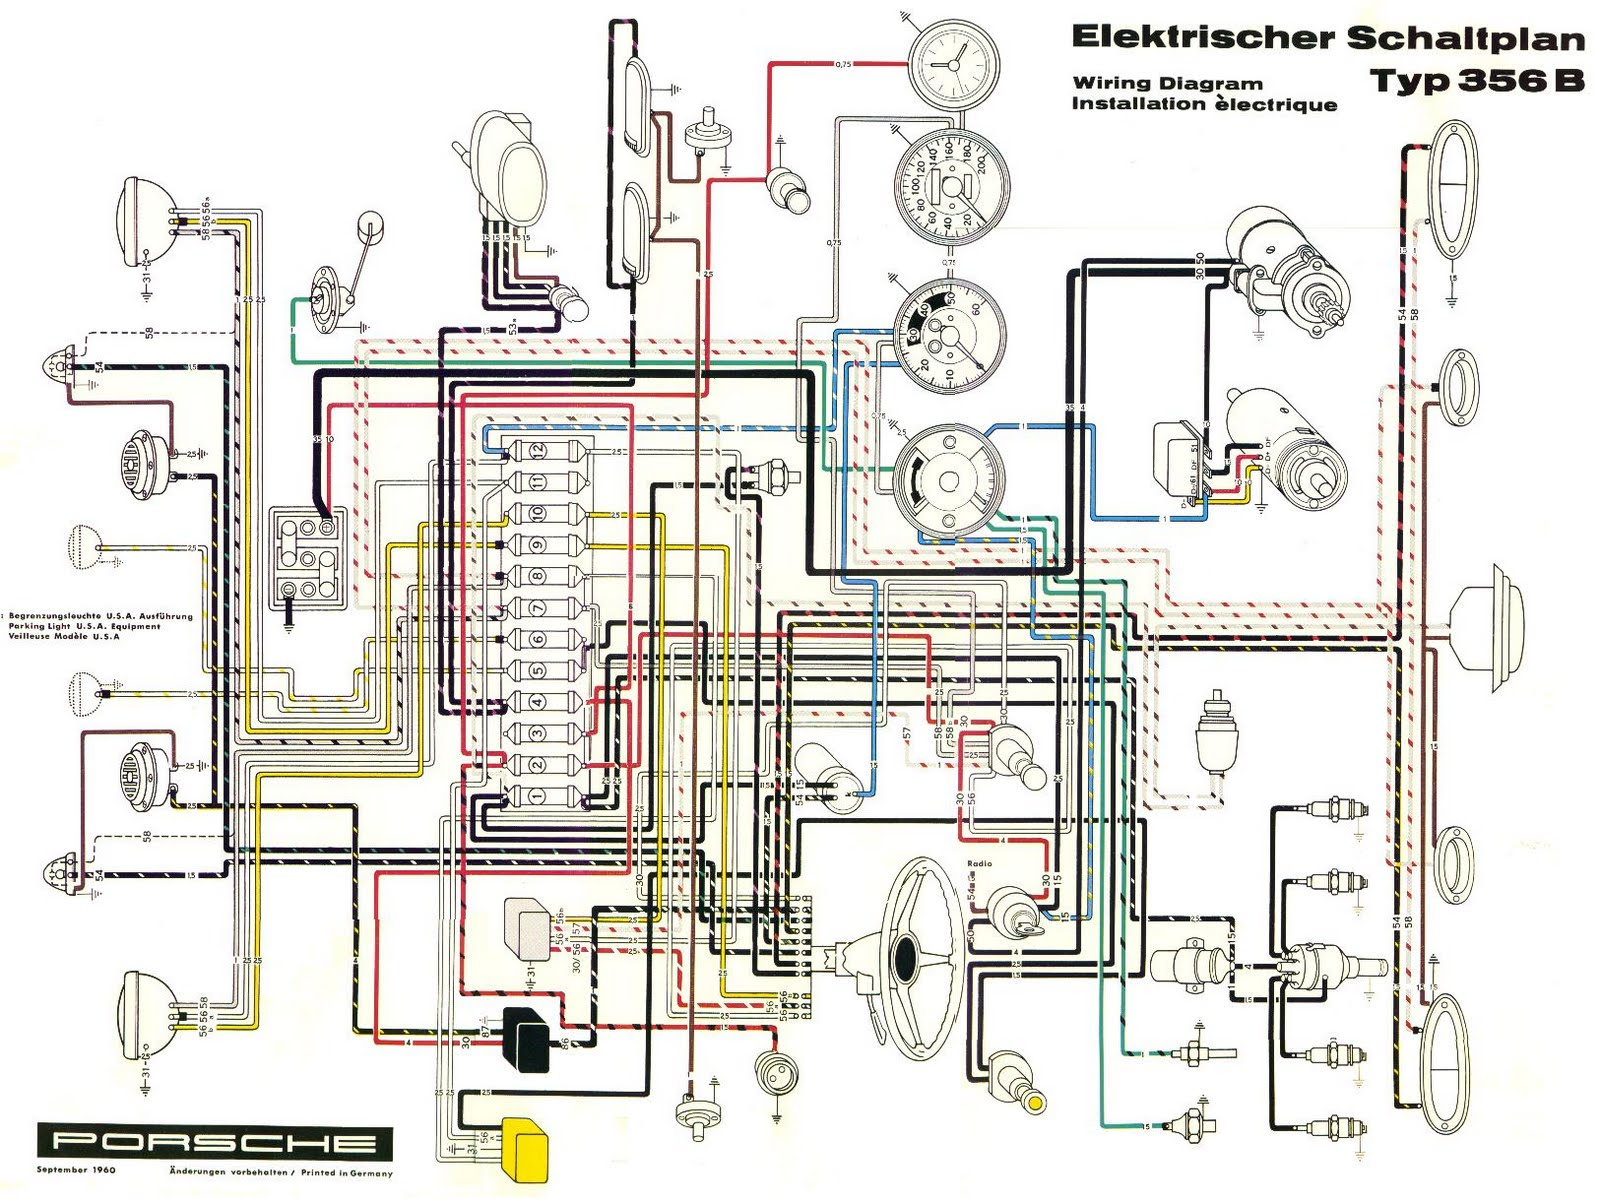 1999 Porsche Boxster Fuse Box Diagram Data Wiring Diagrams Car Manuals Pdf Fault Codes 2002